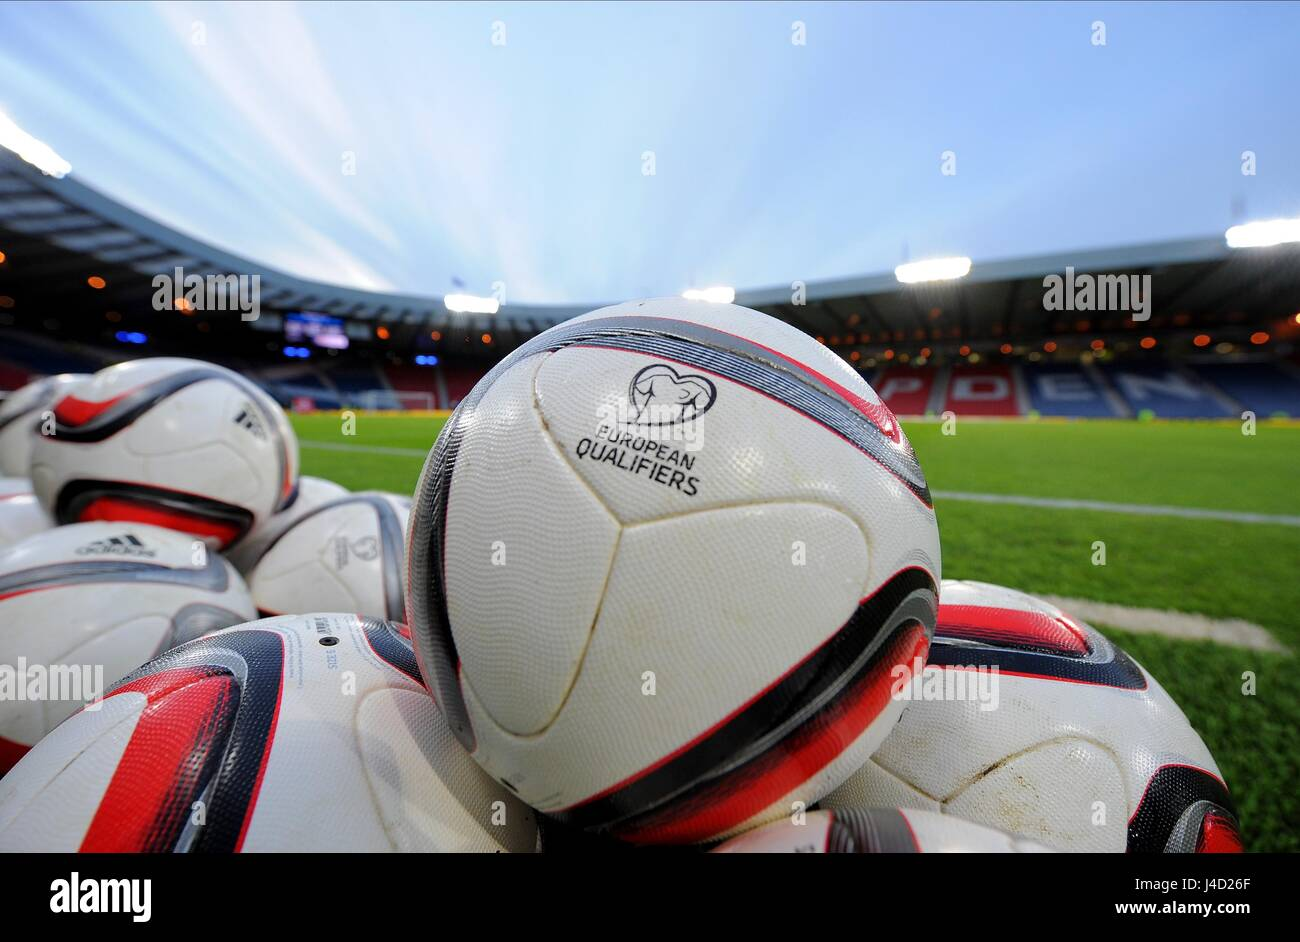 EUROPEAN QUALIFIERS OFFICIAL F SCOTLAND V NORTHERN IRELAND HAMPDEN PARK GLASGOW SCOTLAND 25 March 2015 - Stock Image